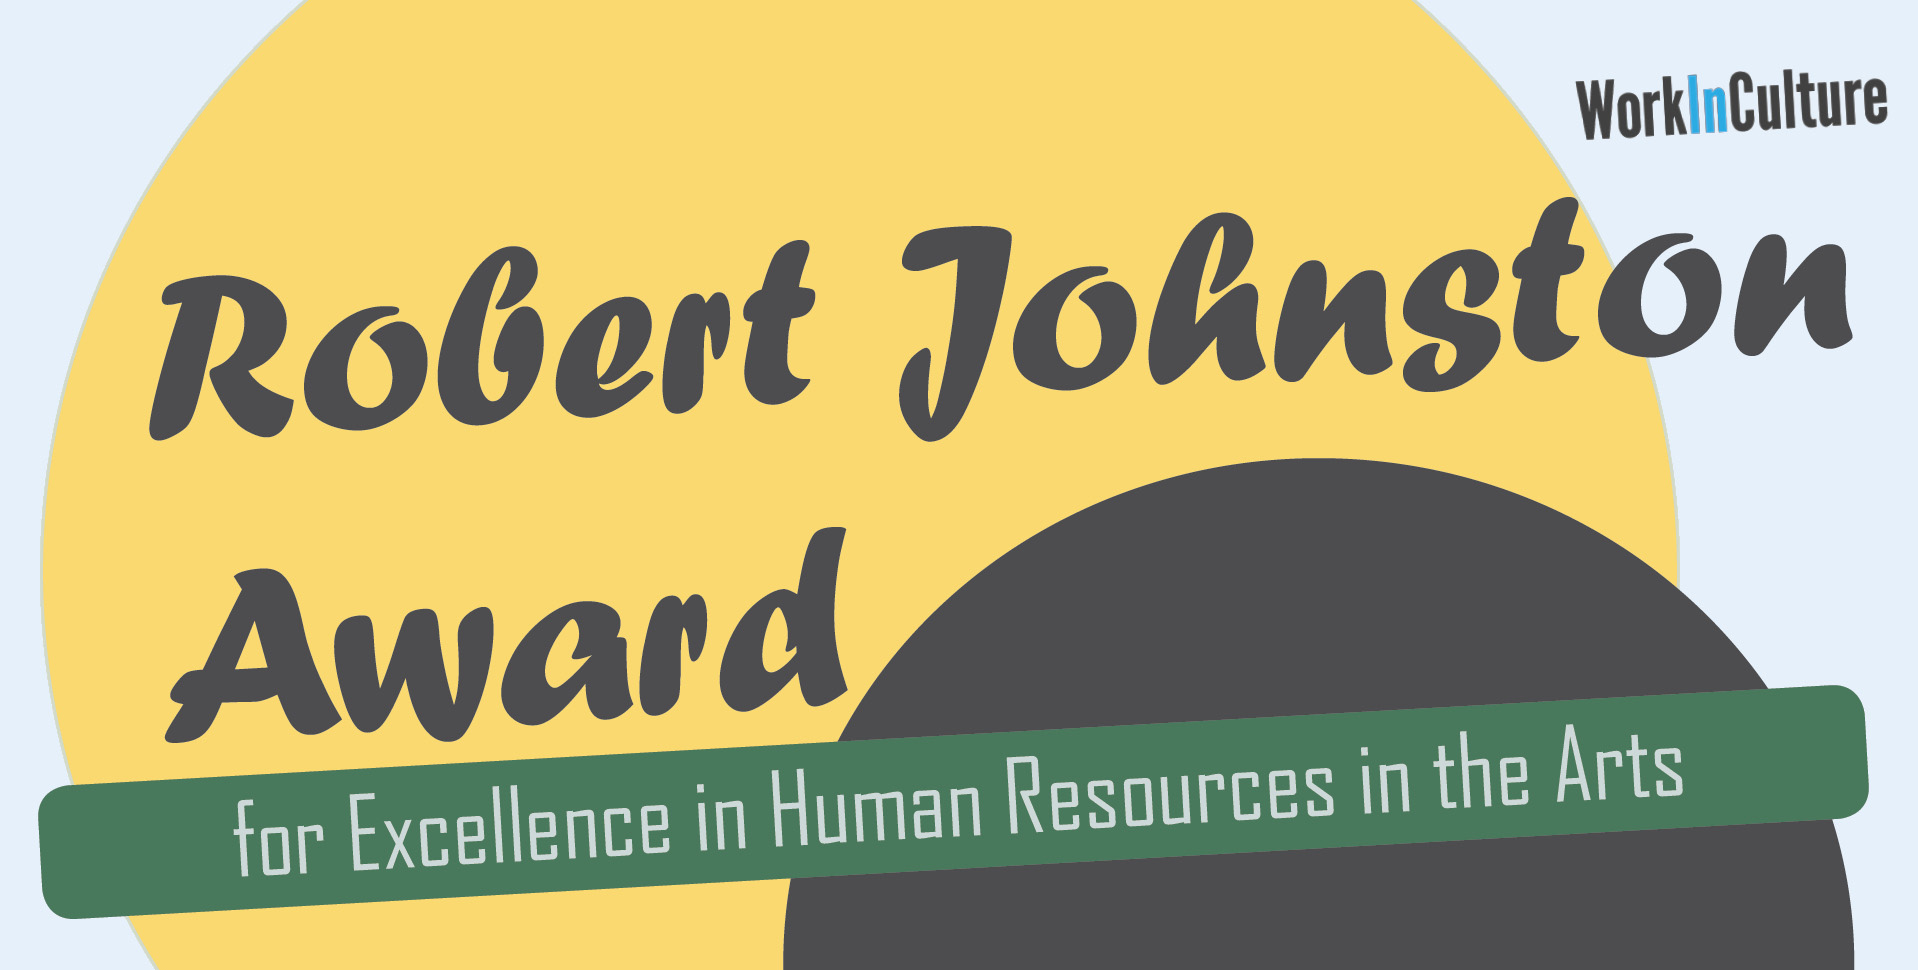 Robert Johnston Award, excellence in Human Resources in the Arts, work in culture